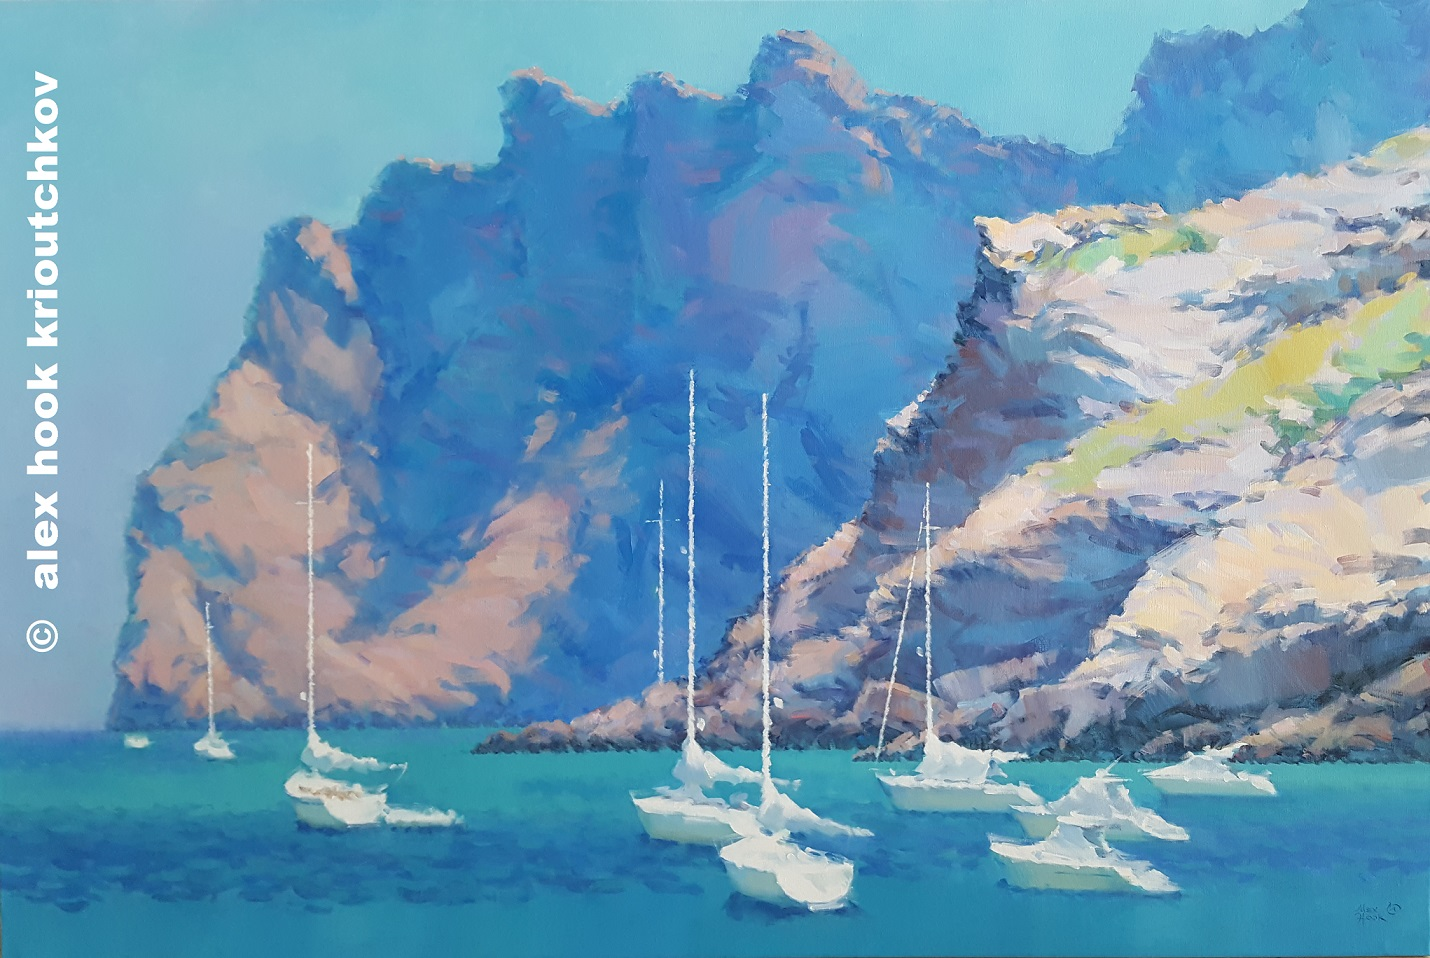 Alex Hook Krioutchkov Artwork Cala San Vicente Mallorca, 2017 Oil Painting, Seascape